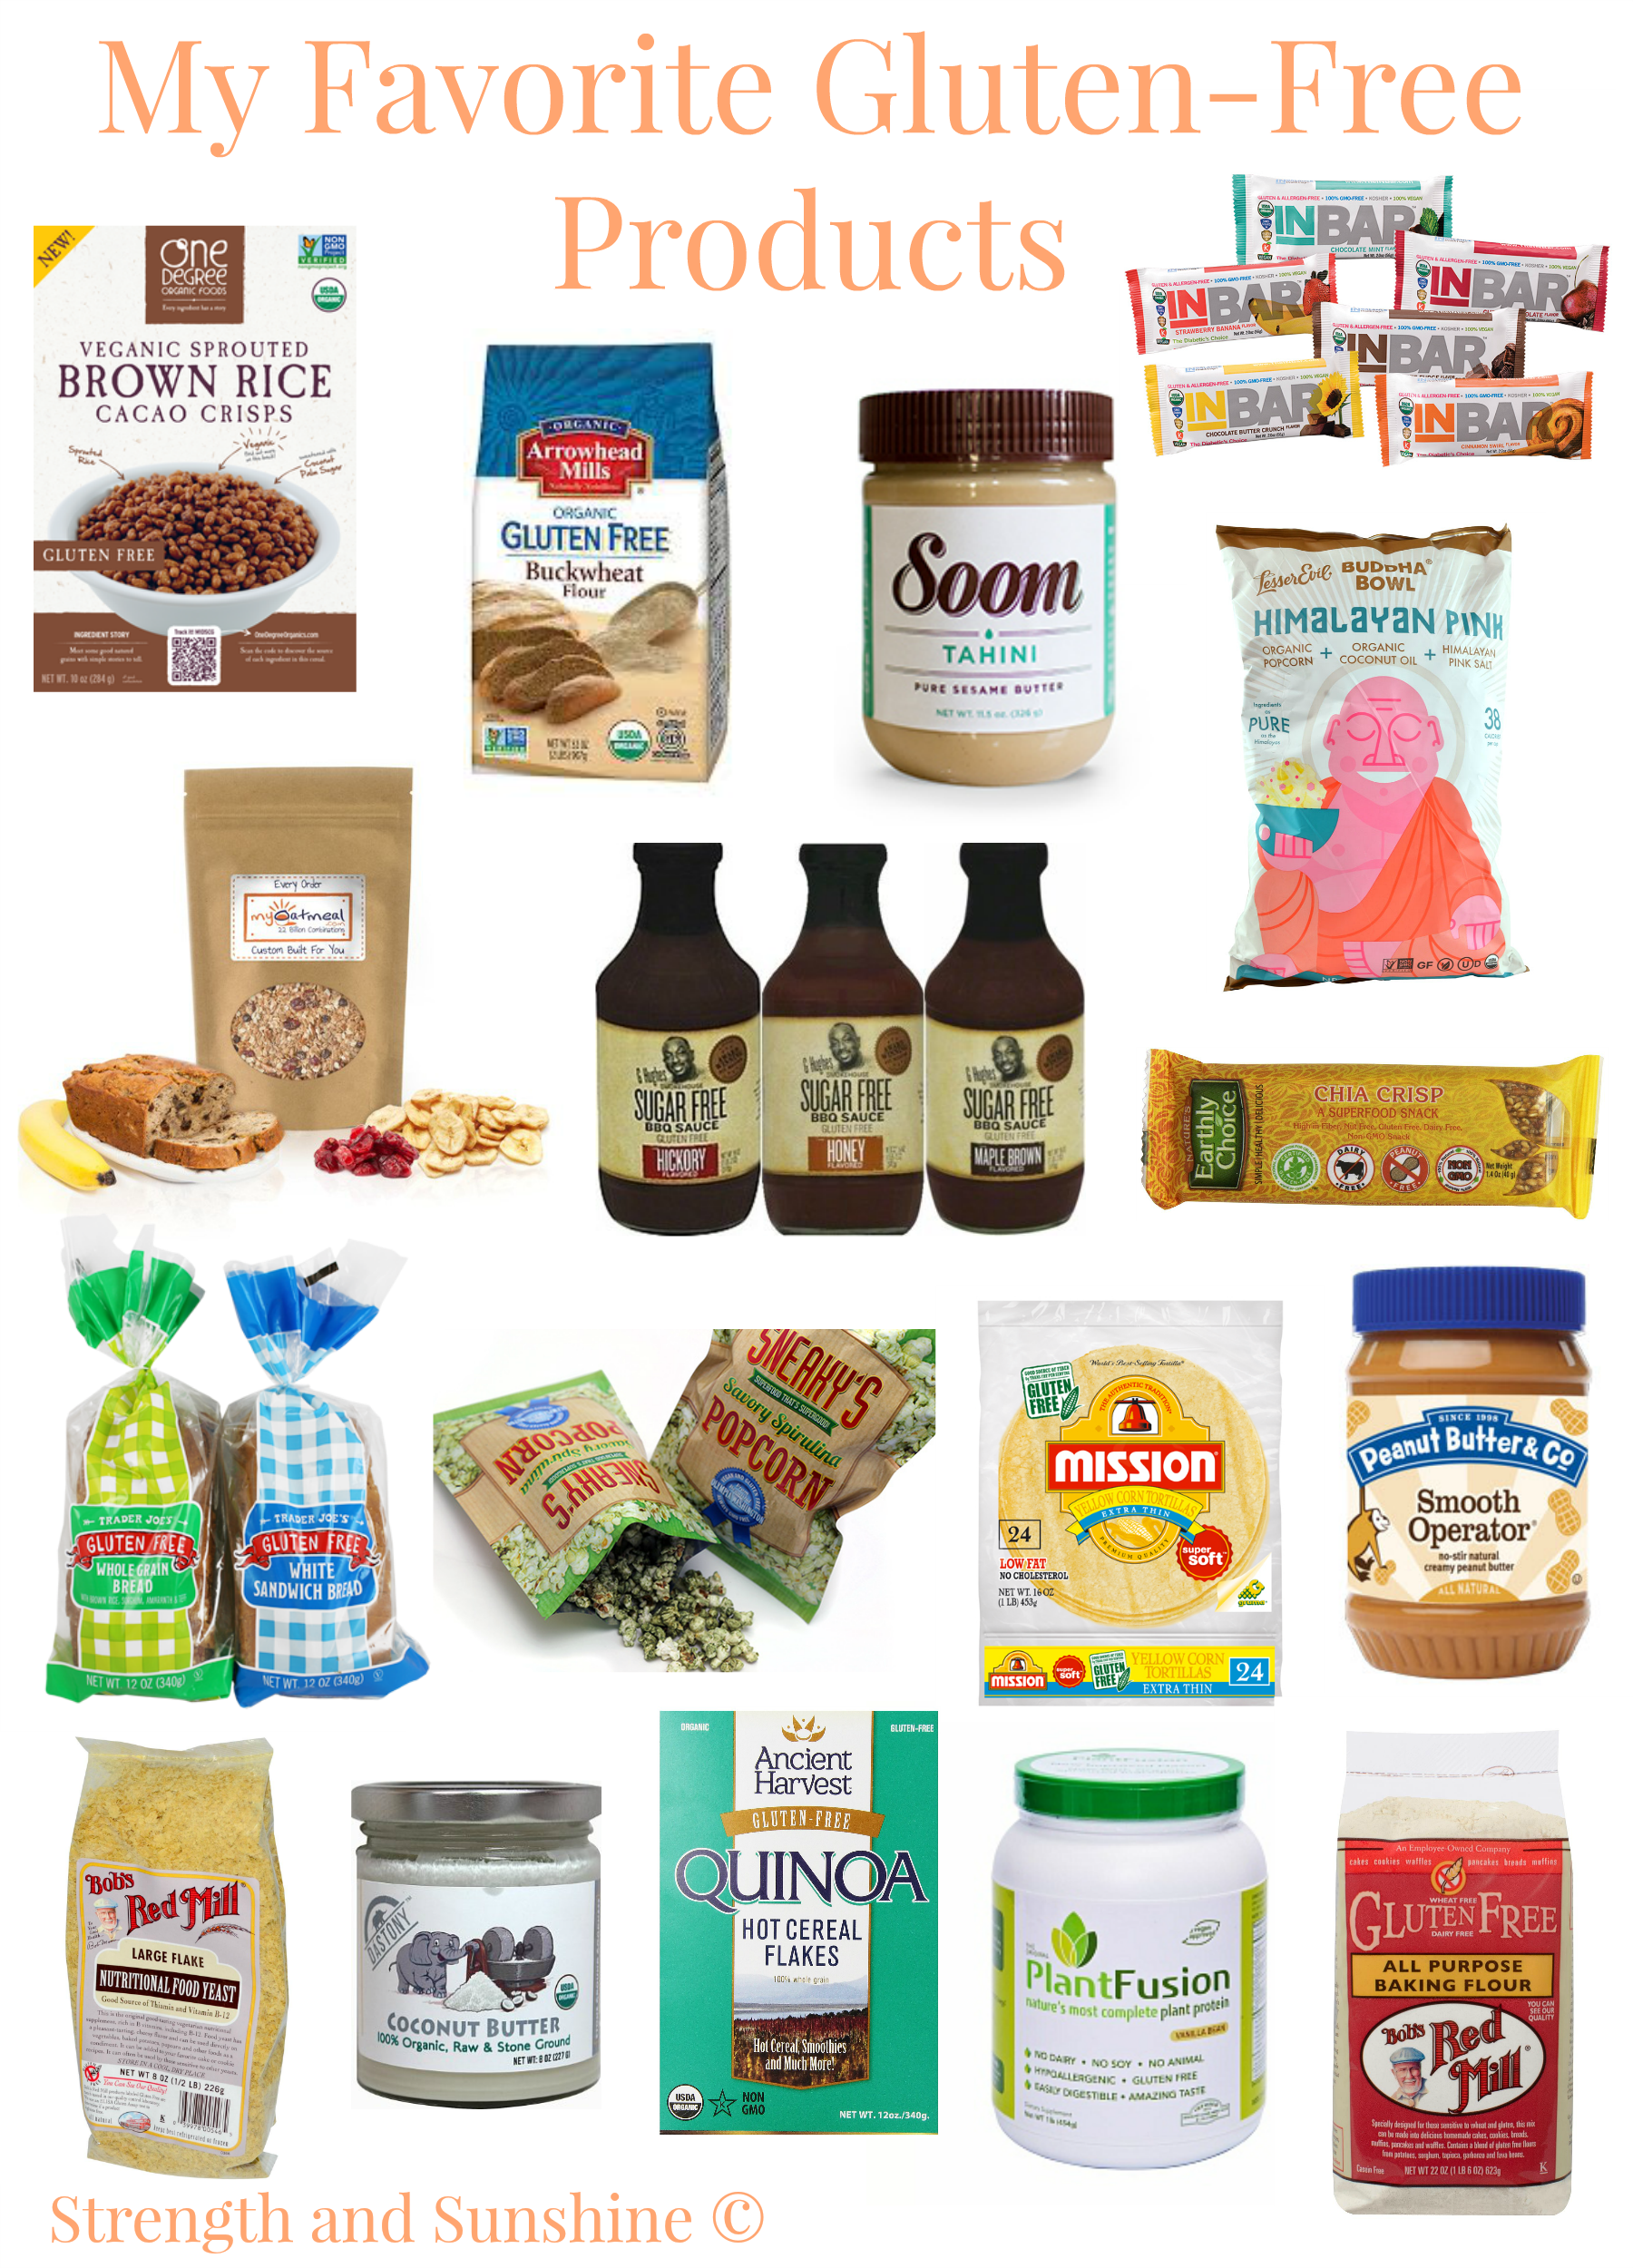 My Favorite Gluten-Free Products | Strength and Sunshine @RebeccaGF666 #glutenfree #celiac